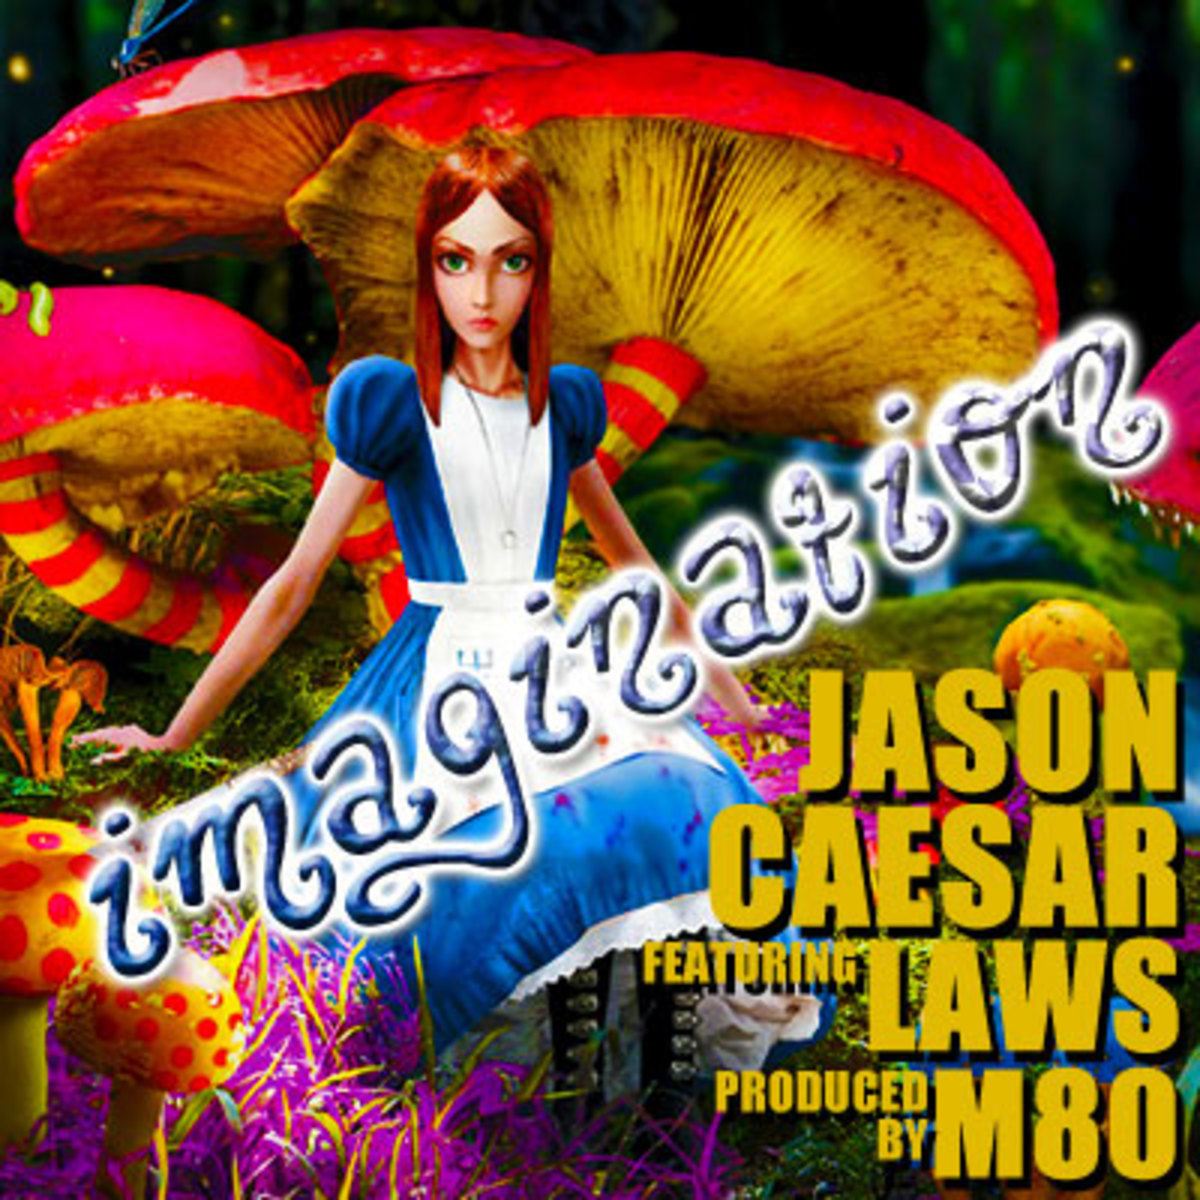 jasoncaesar-imagination.jpg